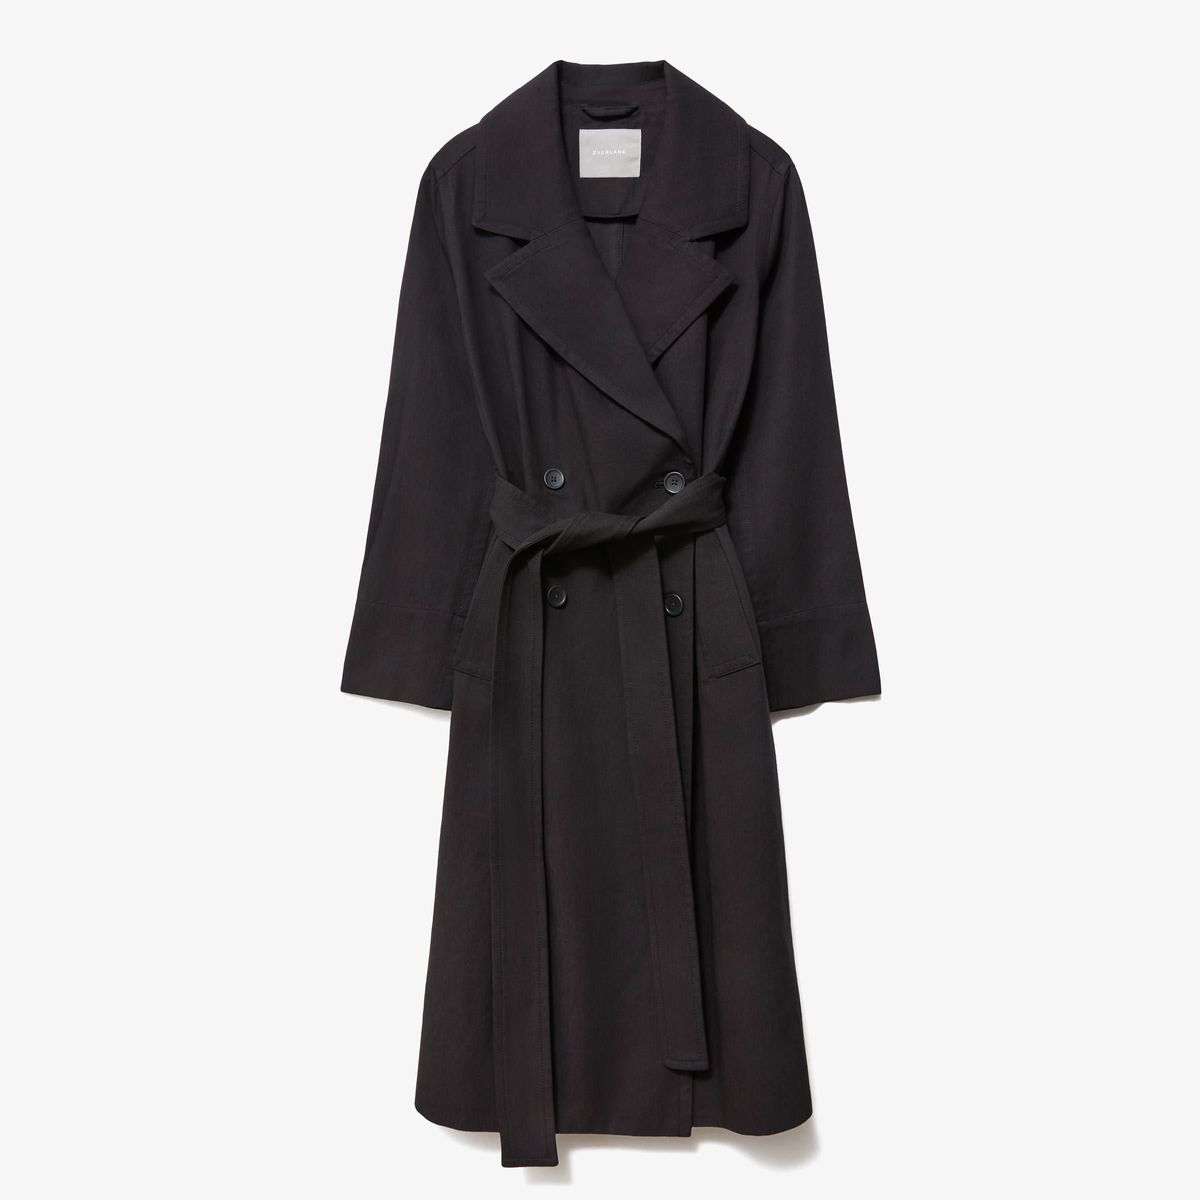 The Drape Trench